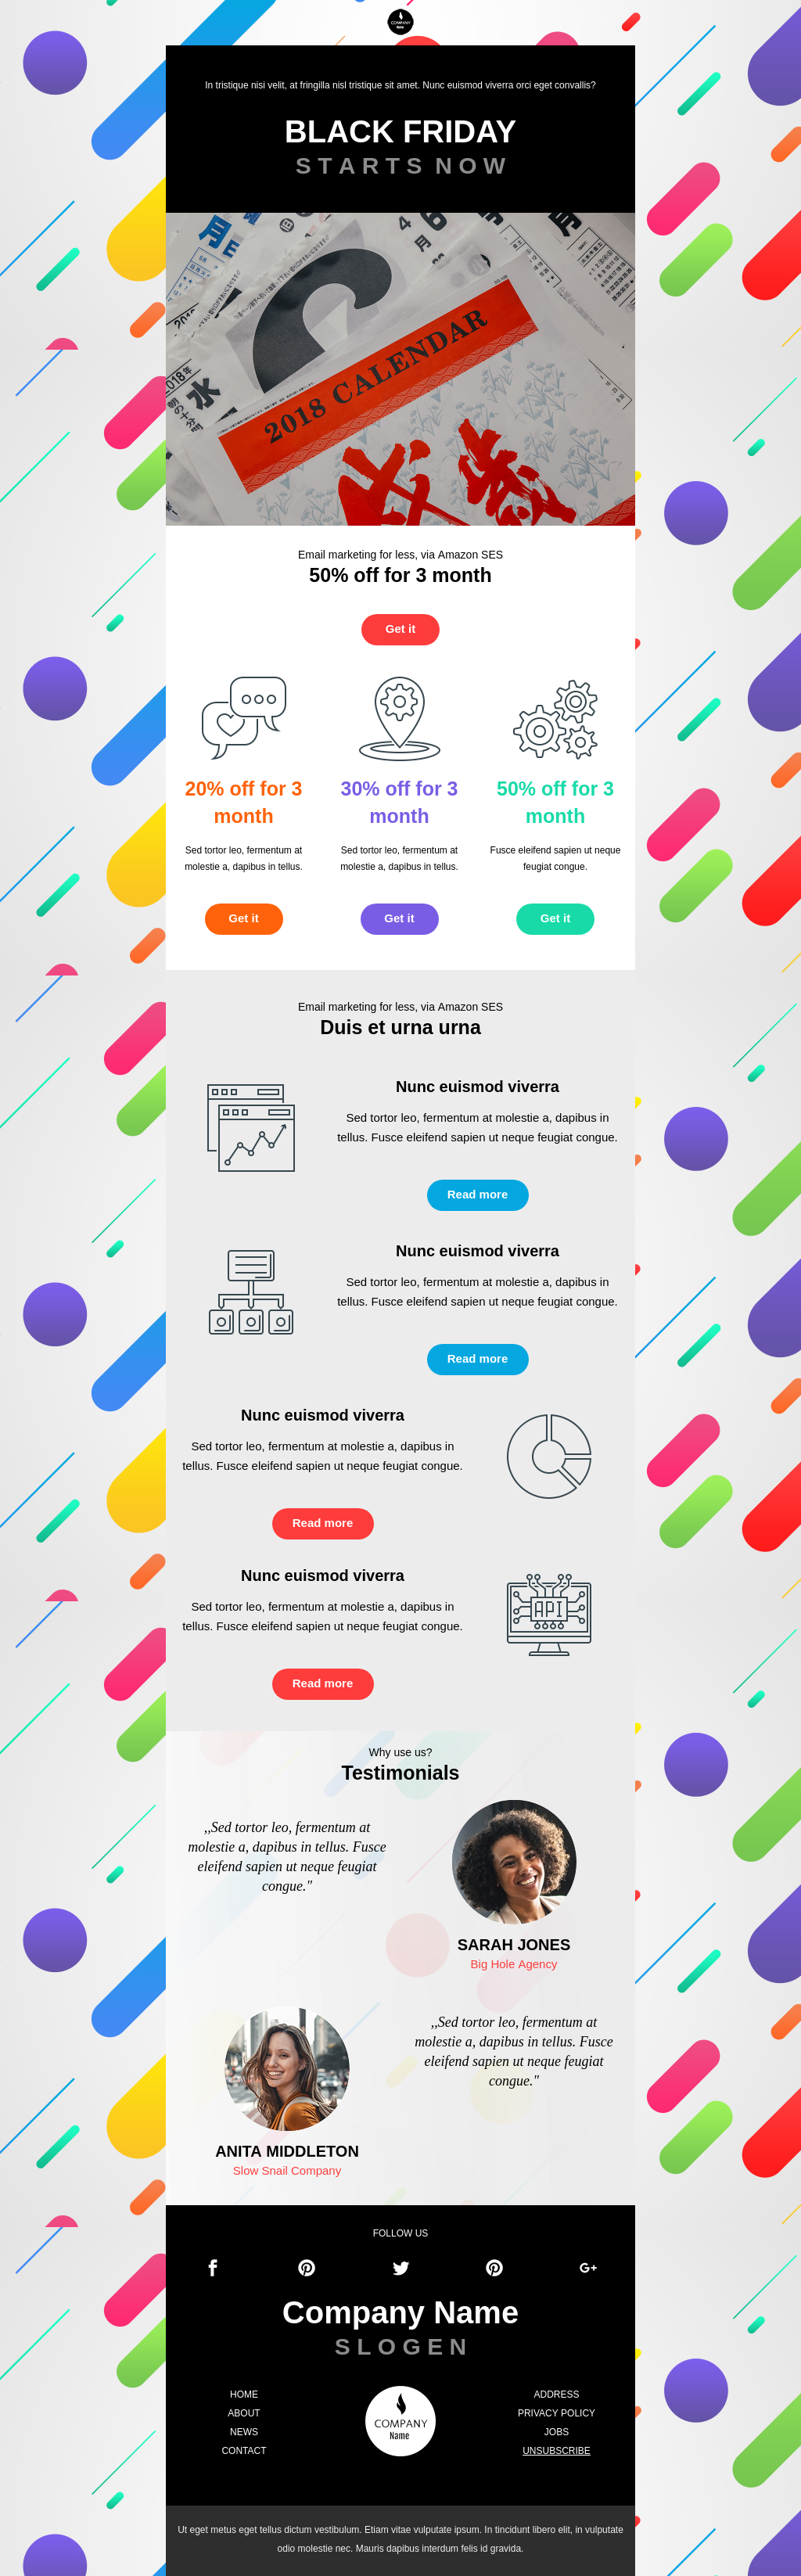 Colorful Black Friday email template promoting your services